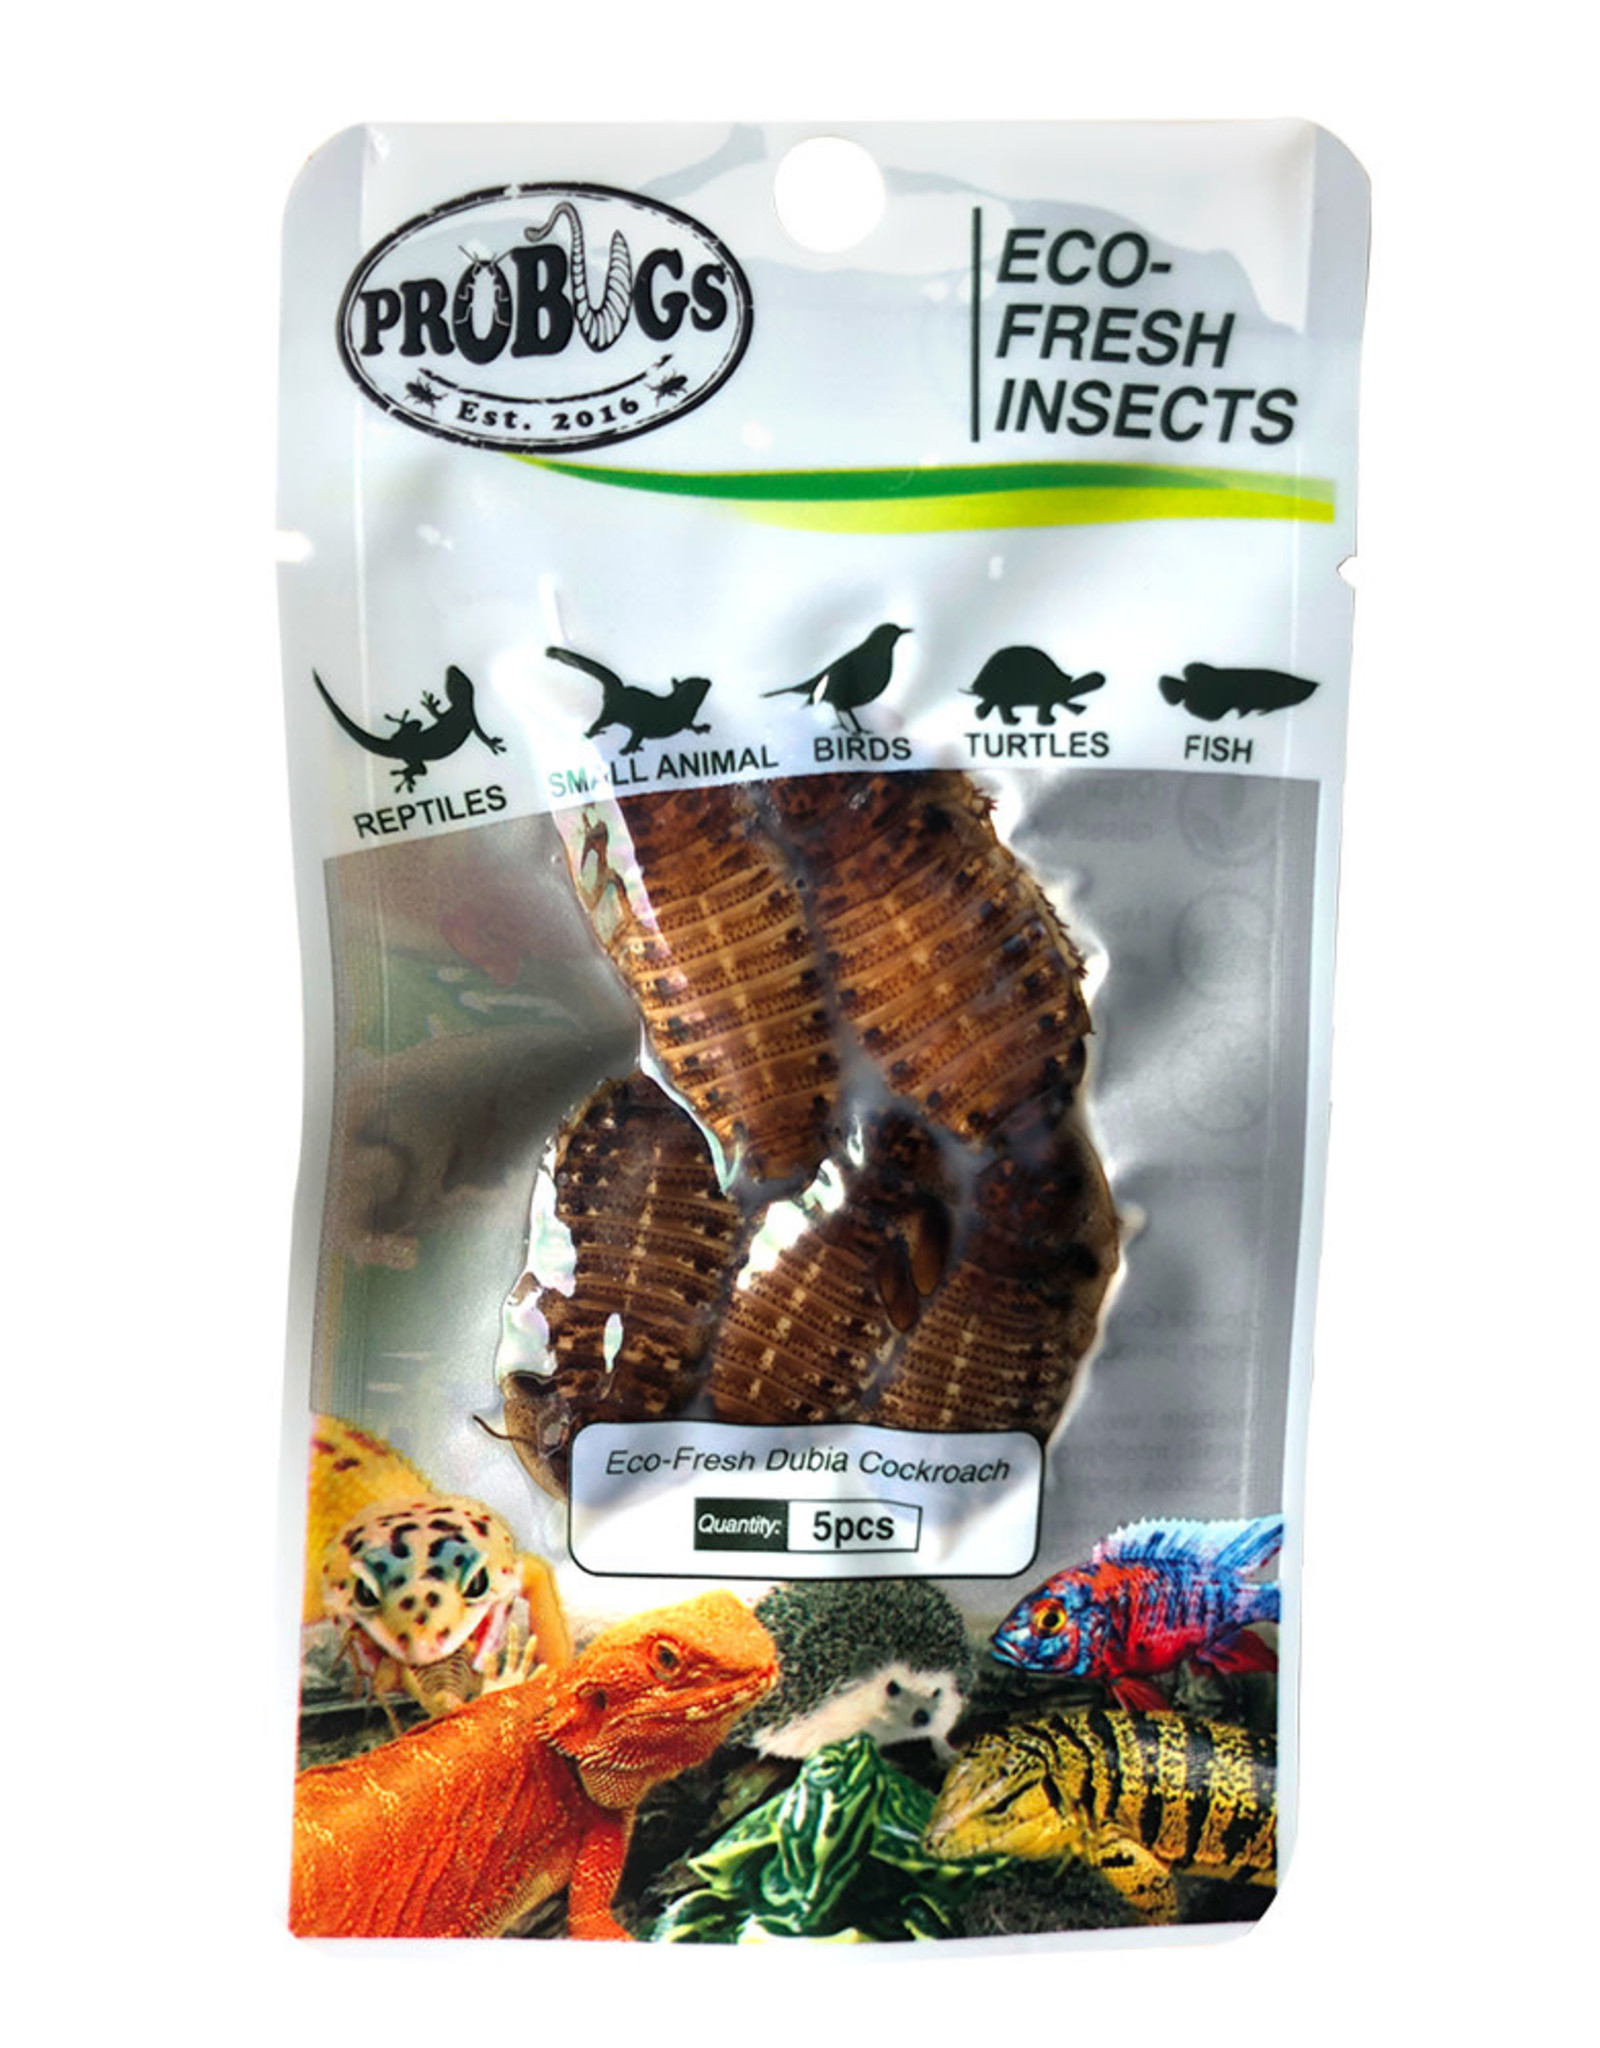 Probugs Dubia Cockroach package